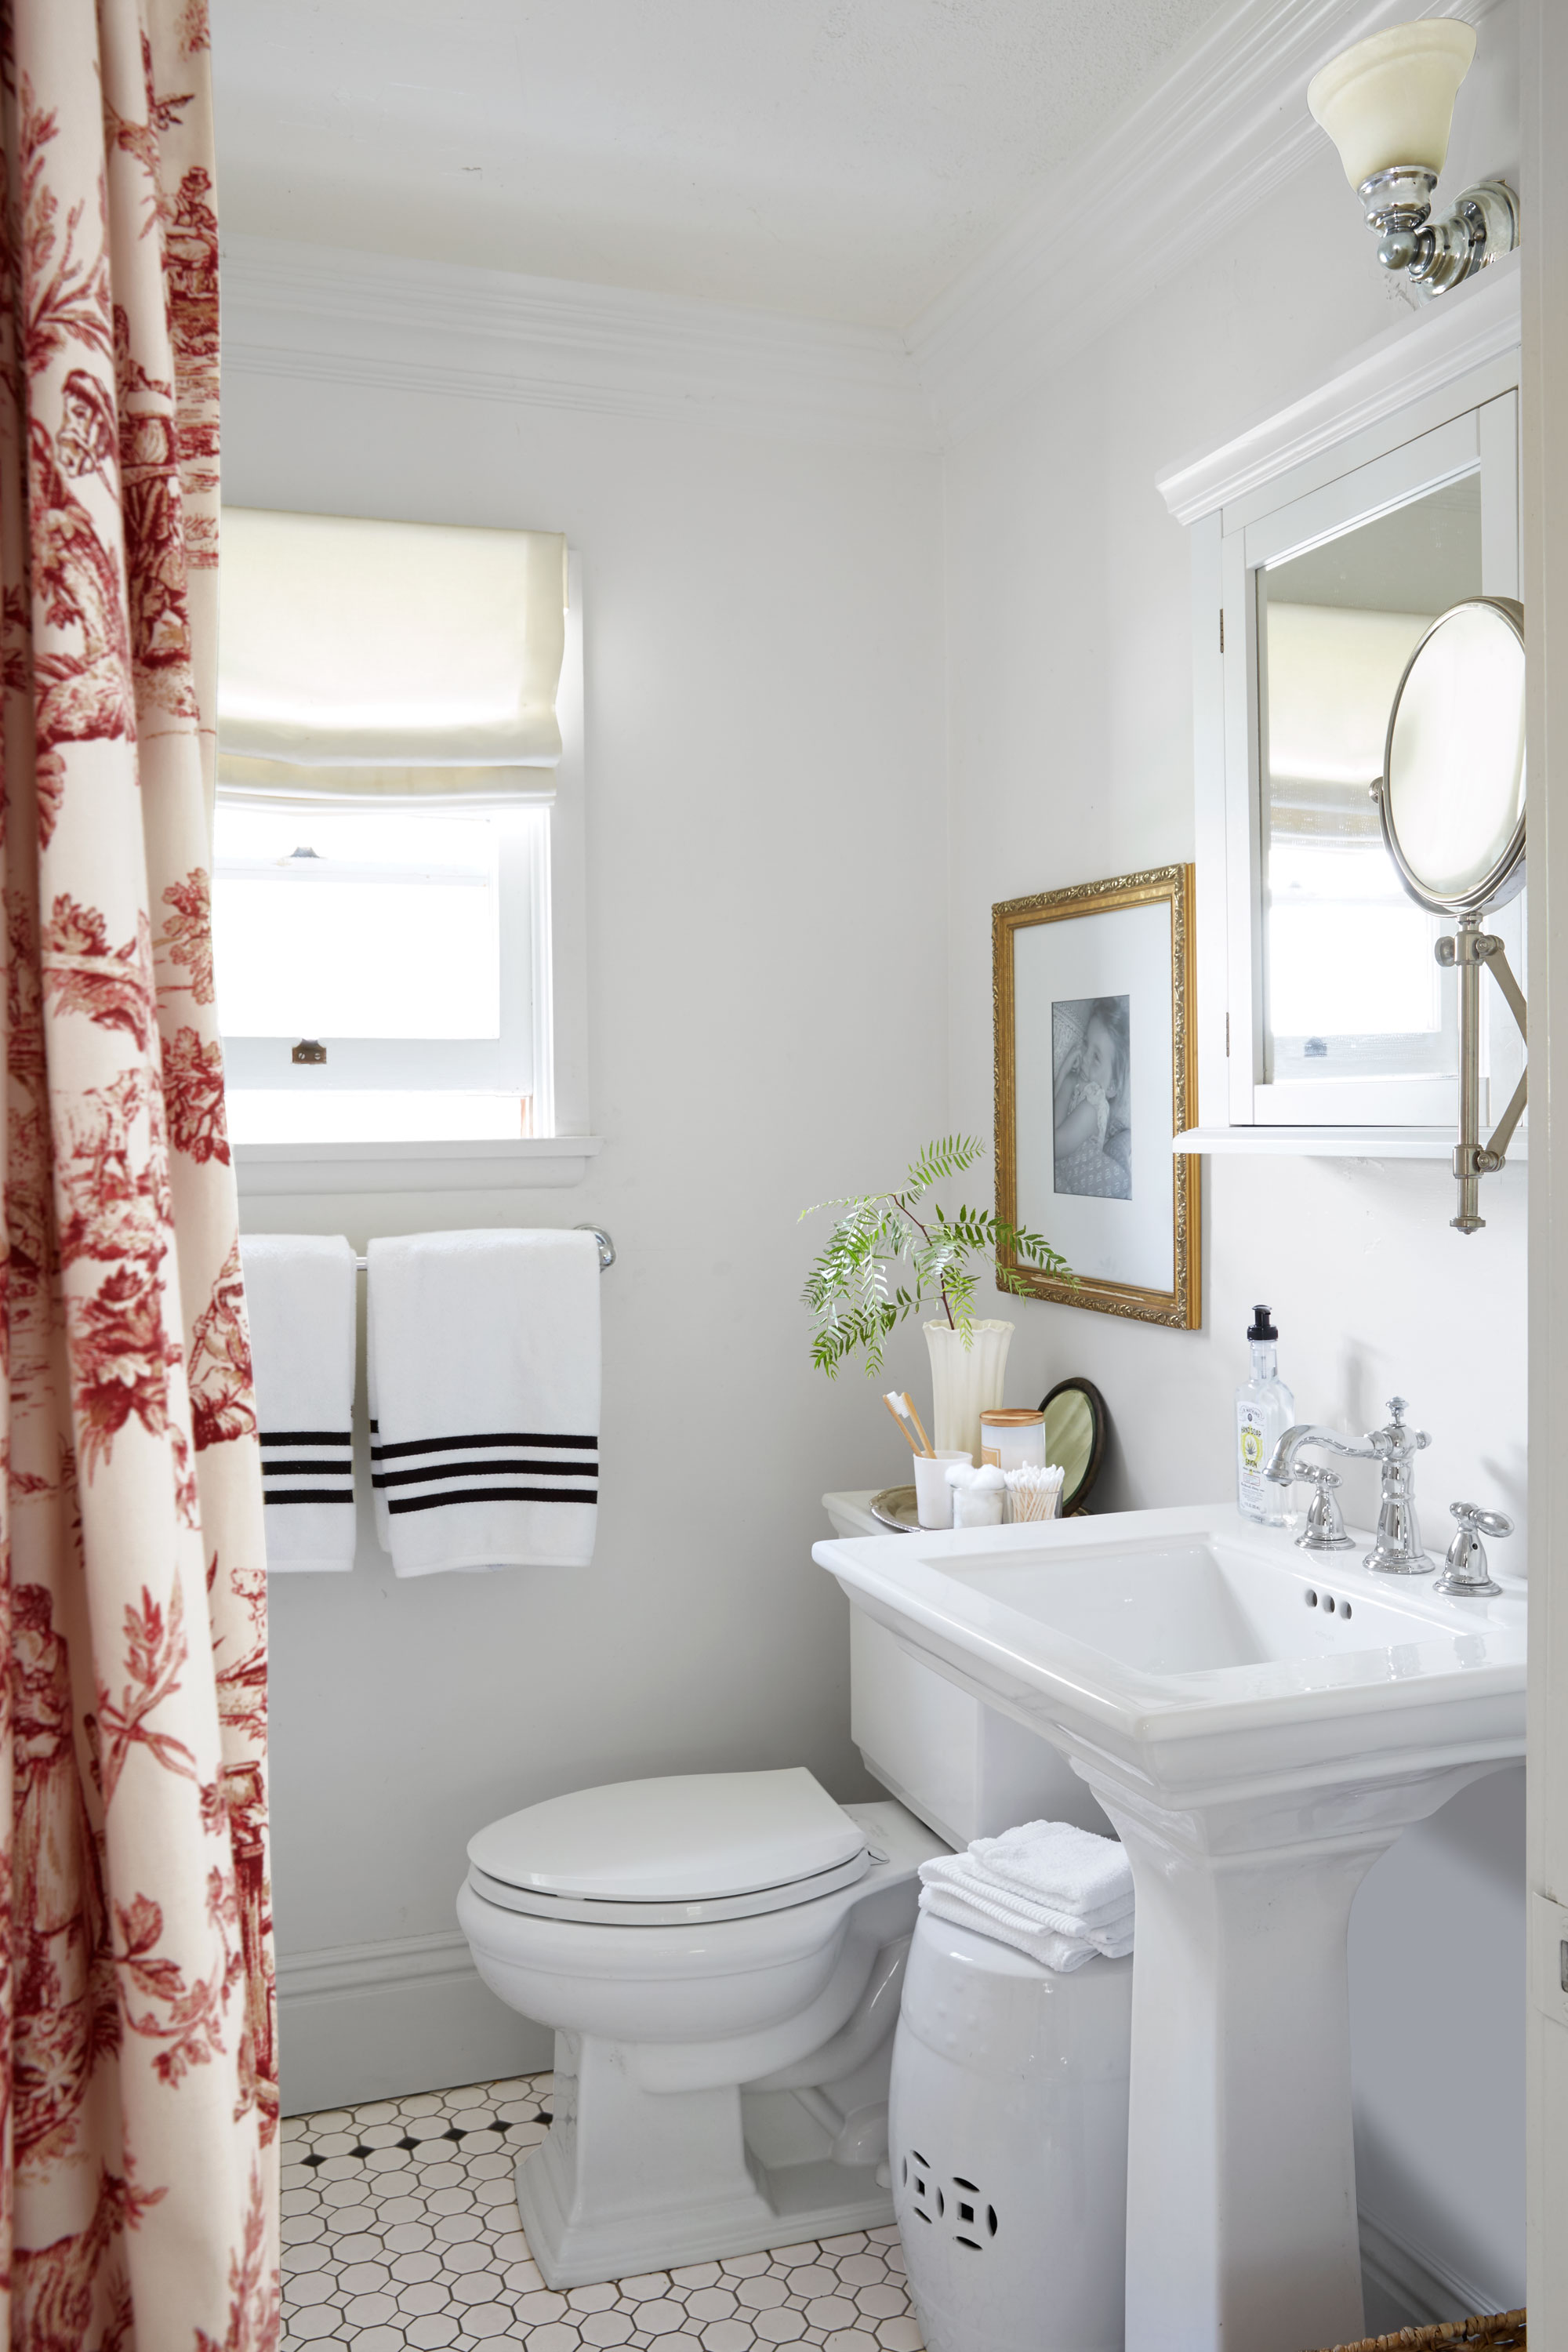 30 Quick and Easy Bathroom Decorating Ideas - Freshome.com